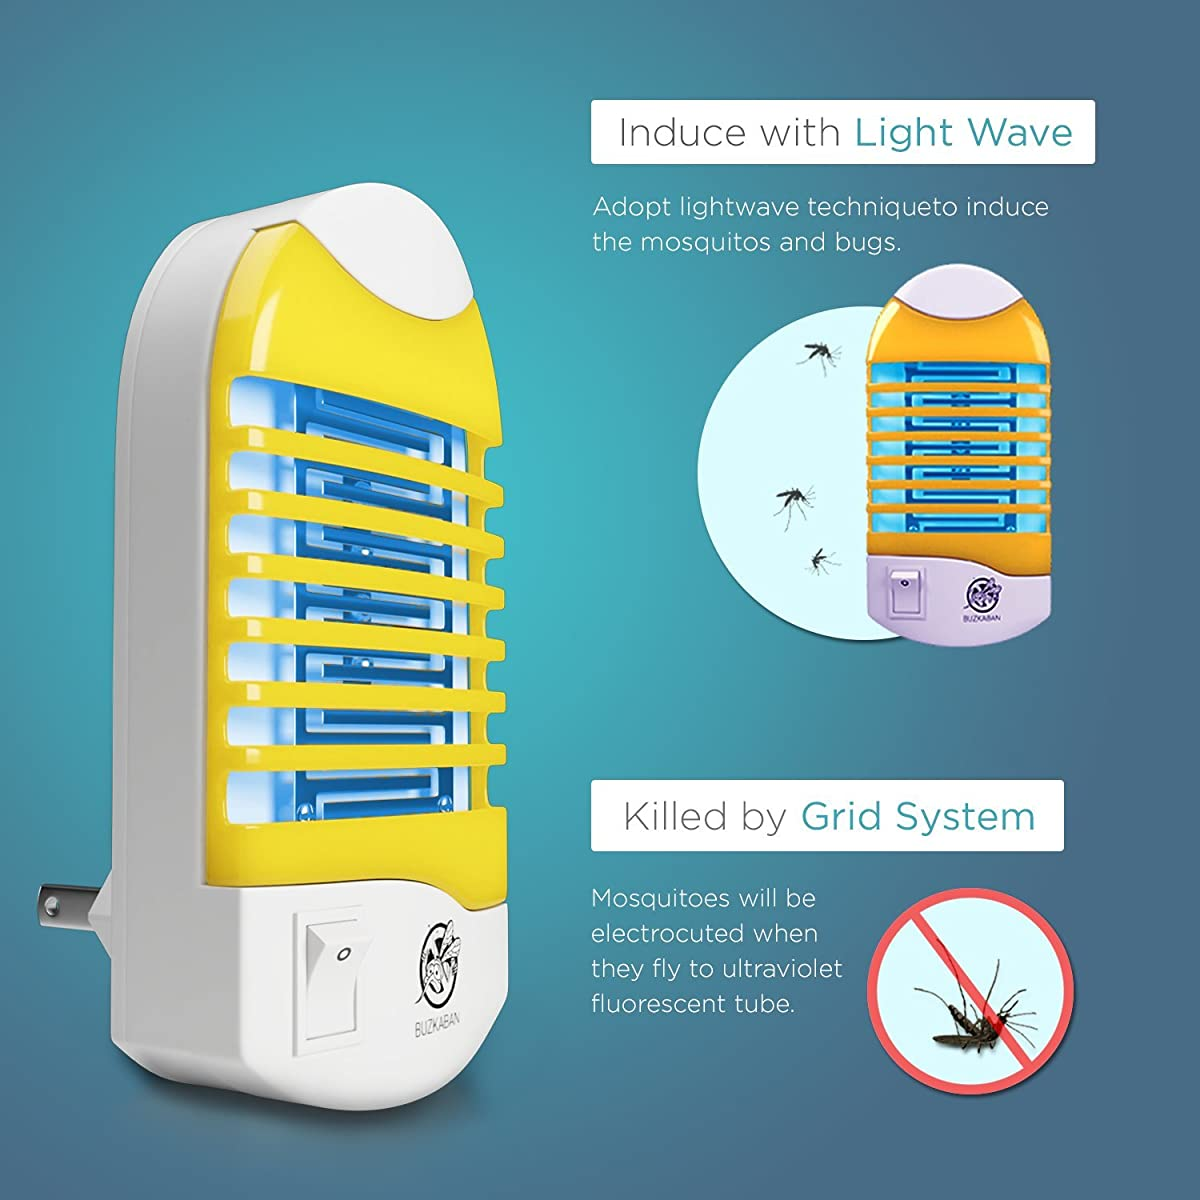 Mosquito Killer Lamp, Indoor Bug Zapper, Electronic Insect Killer Eliminates Most Flying Pests - 2 pack, Yellow color.1 year Warranty and Money Return.